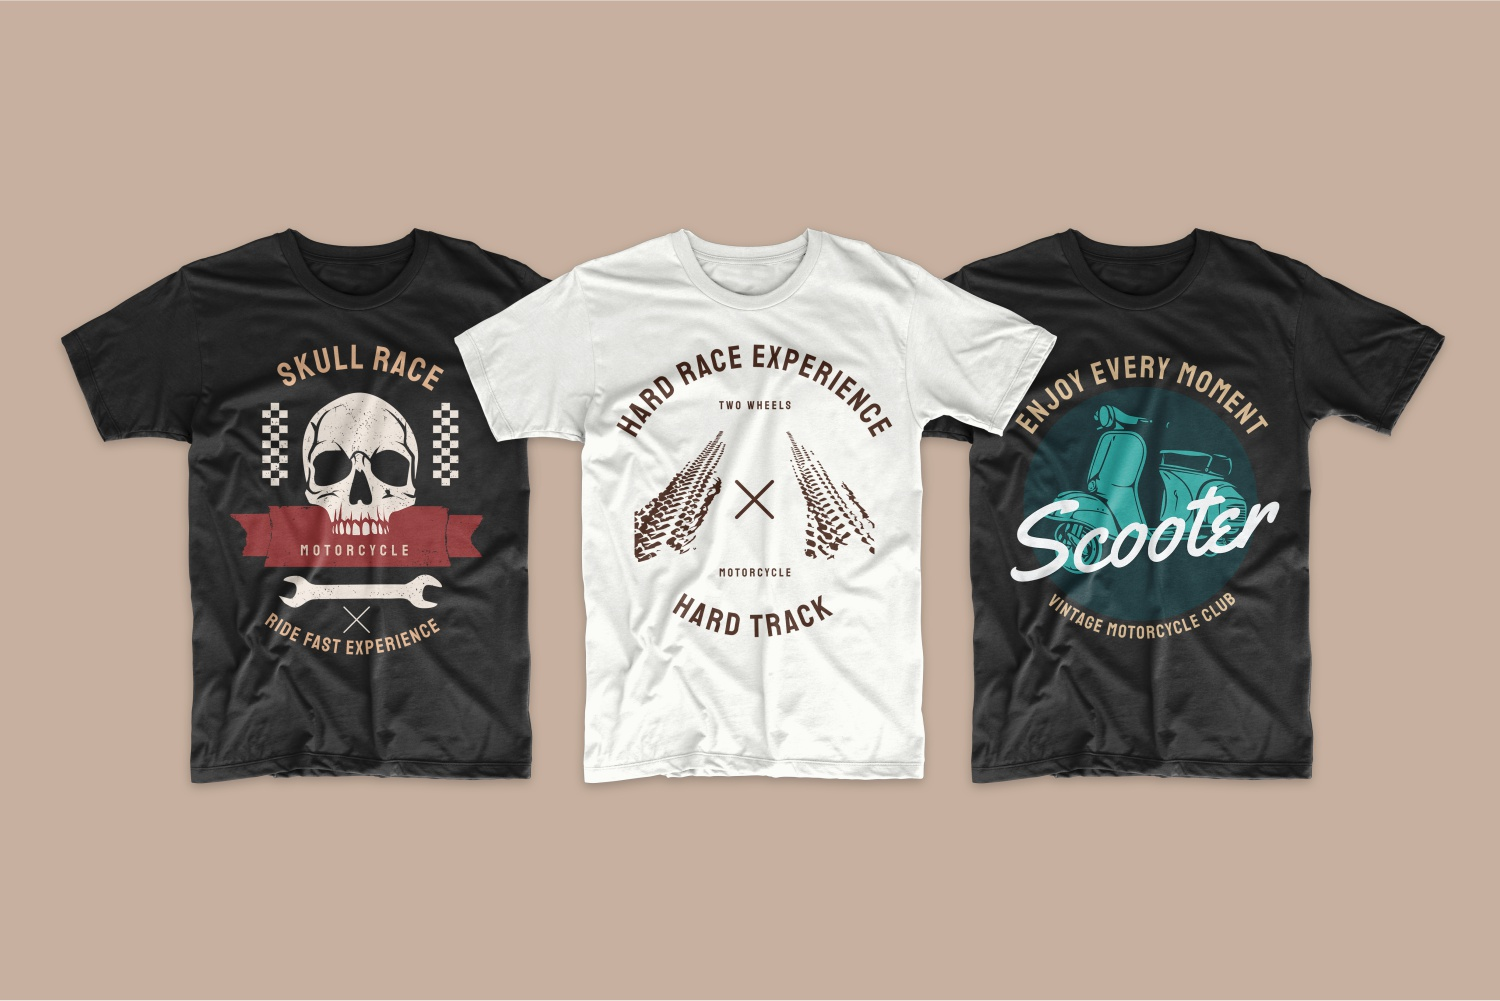 Motorcycle T-Shirts with themed designs.